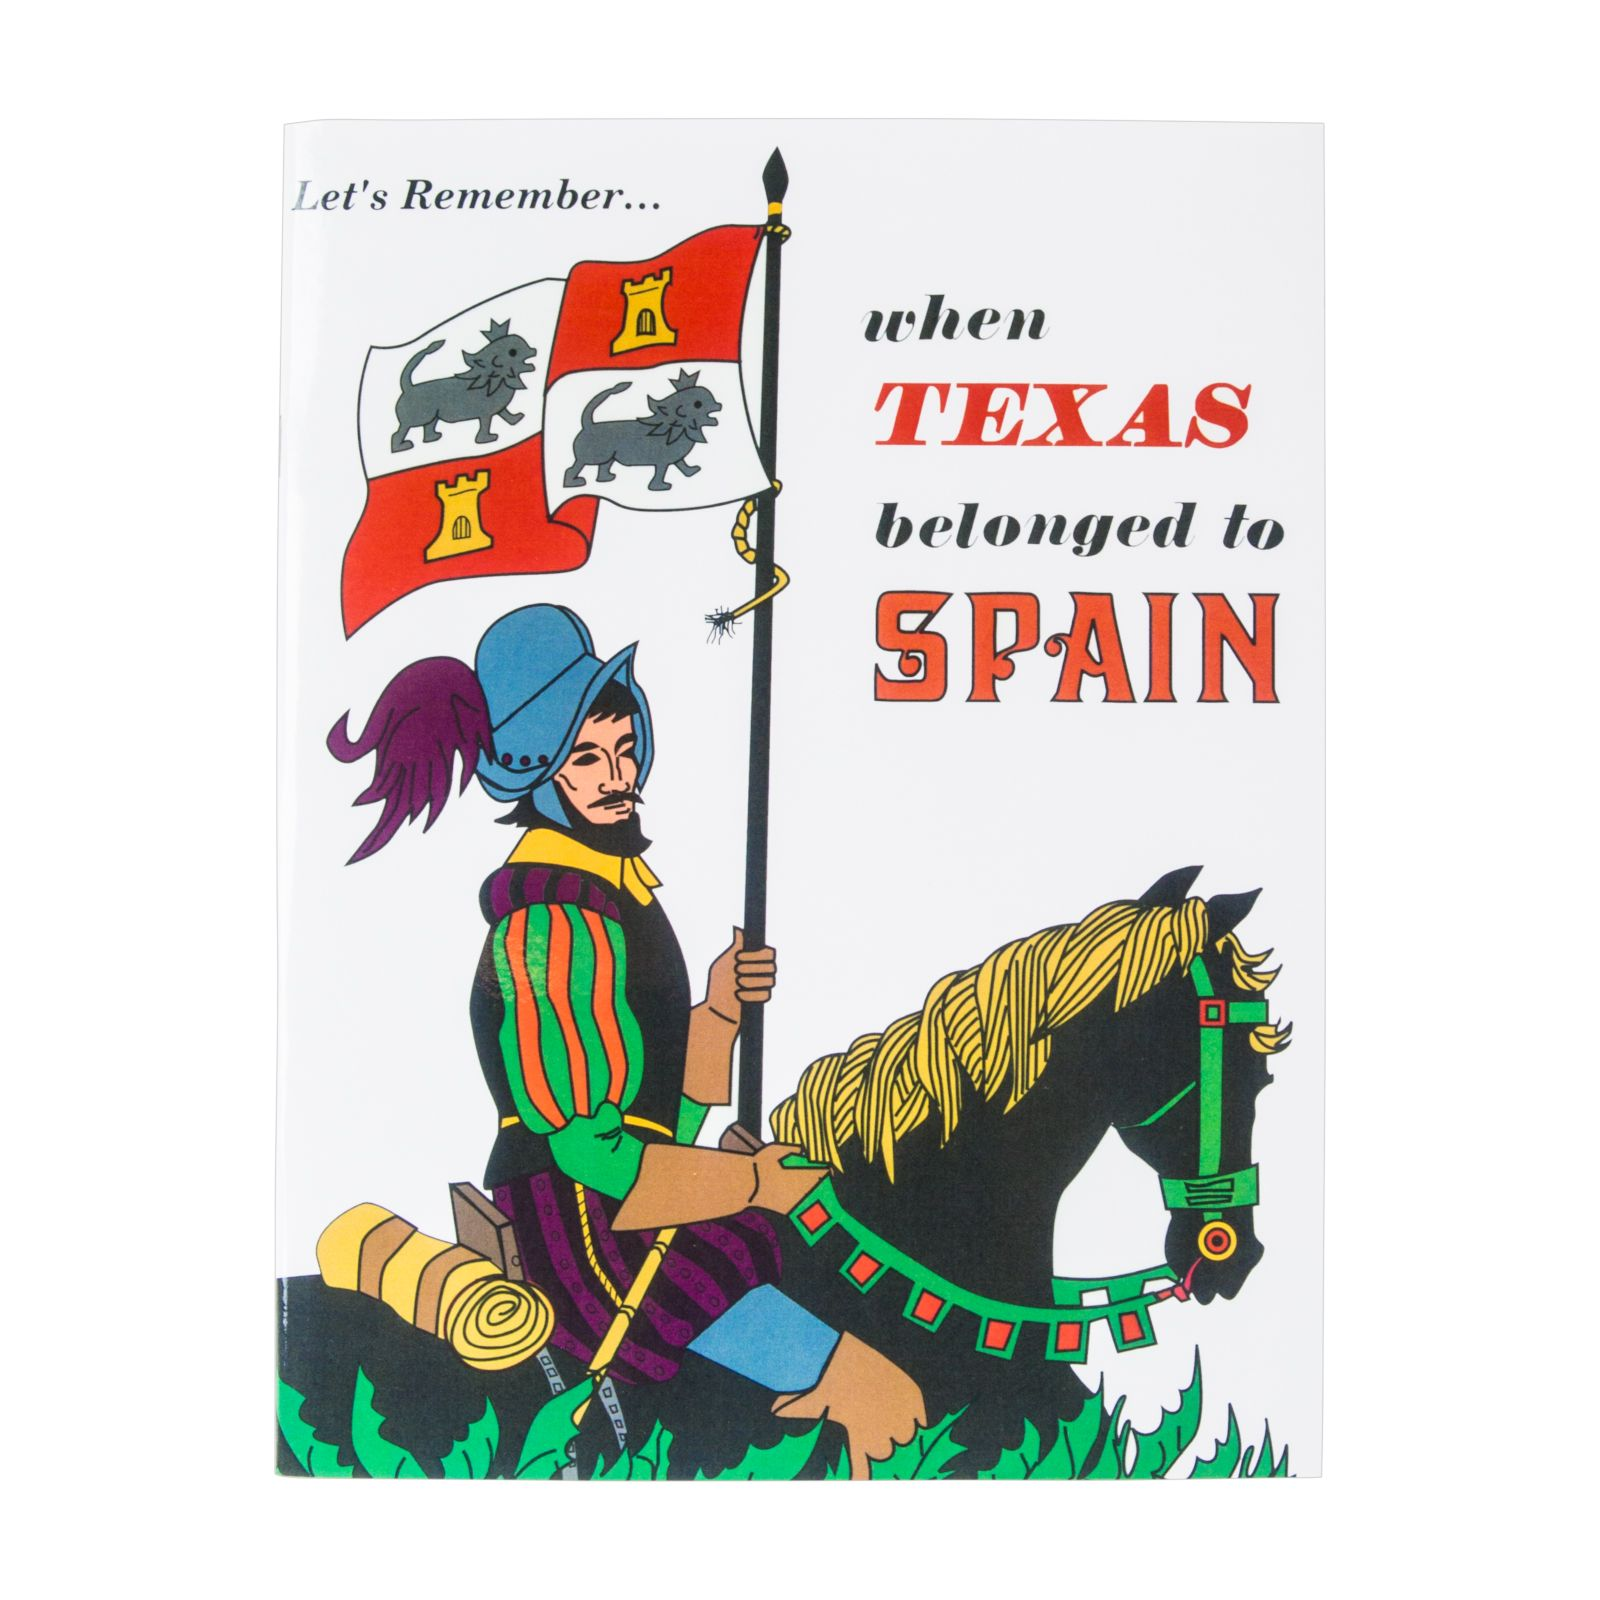 Let's Remember When Texas Belonged to Spain